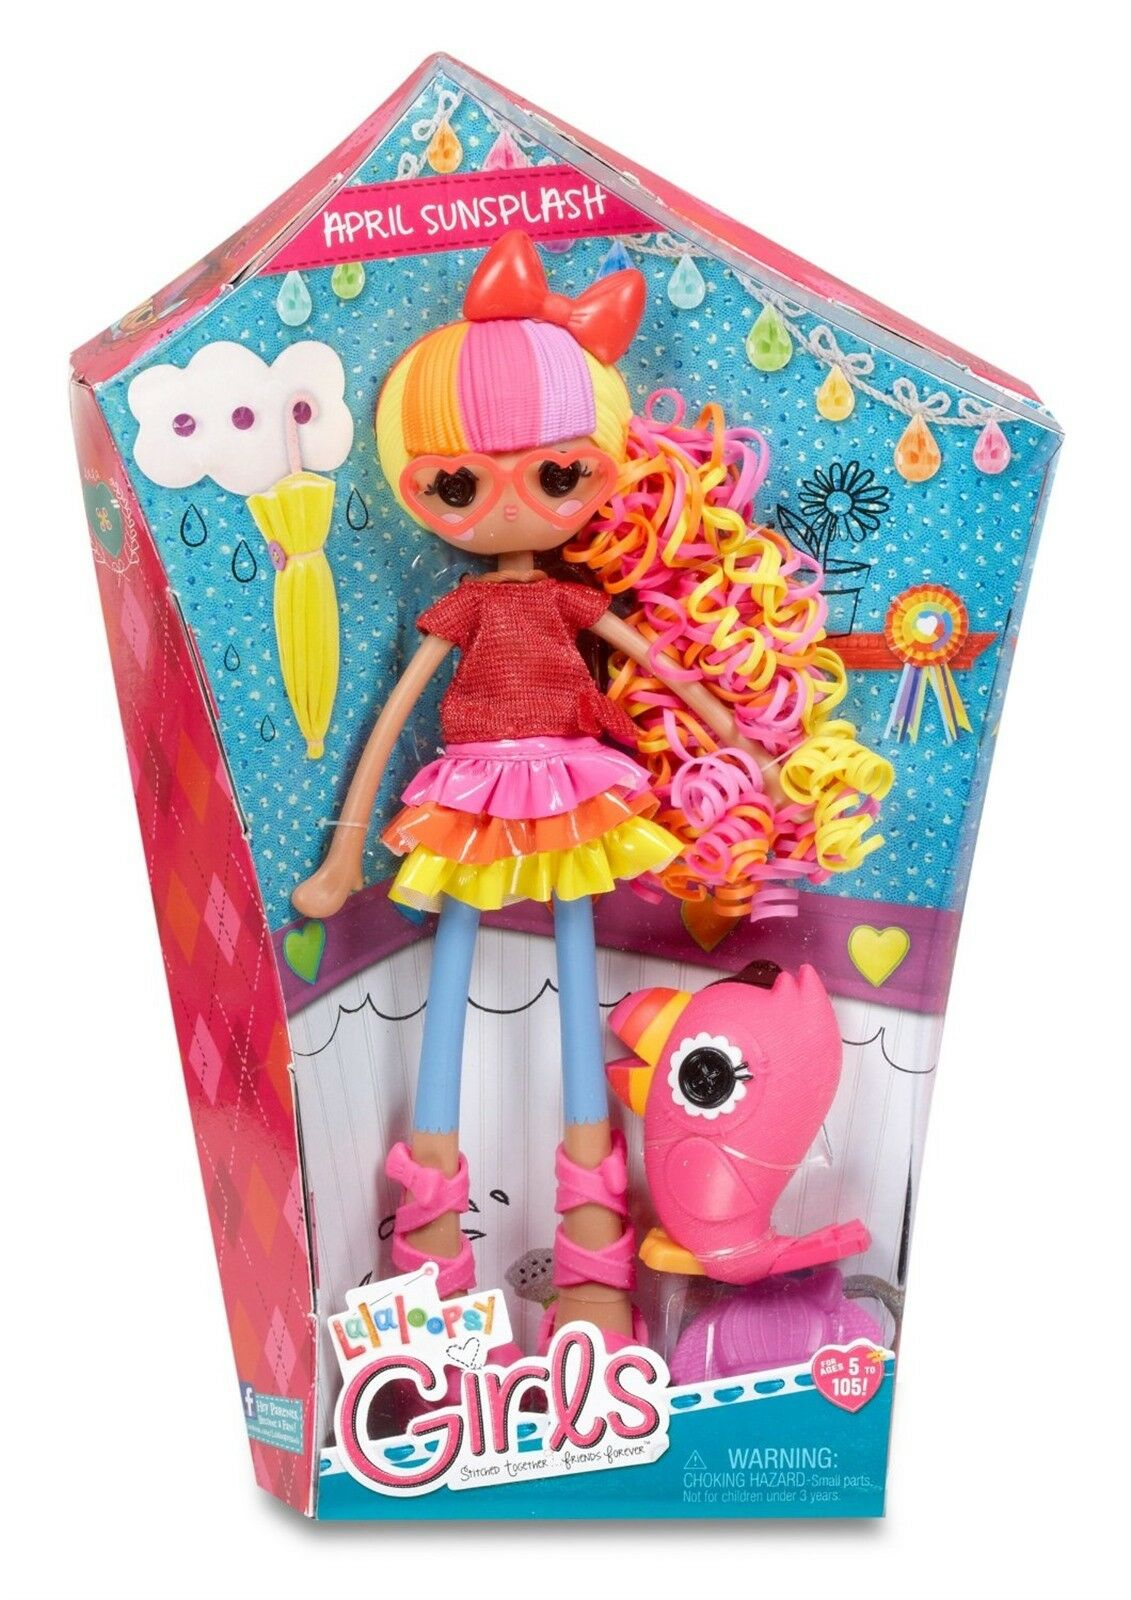 LALALOOPSY GIRLS APRIL SUNSPLASH  BRAND NEW IN BOX